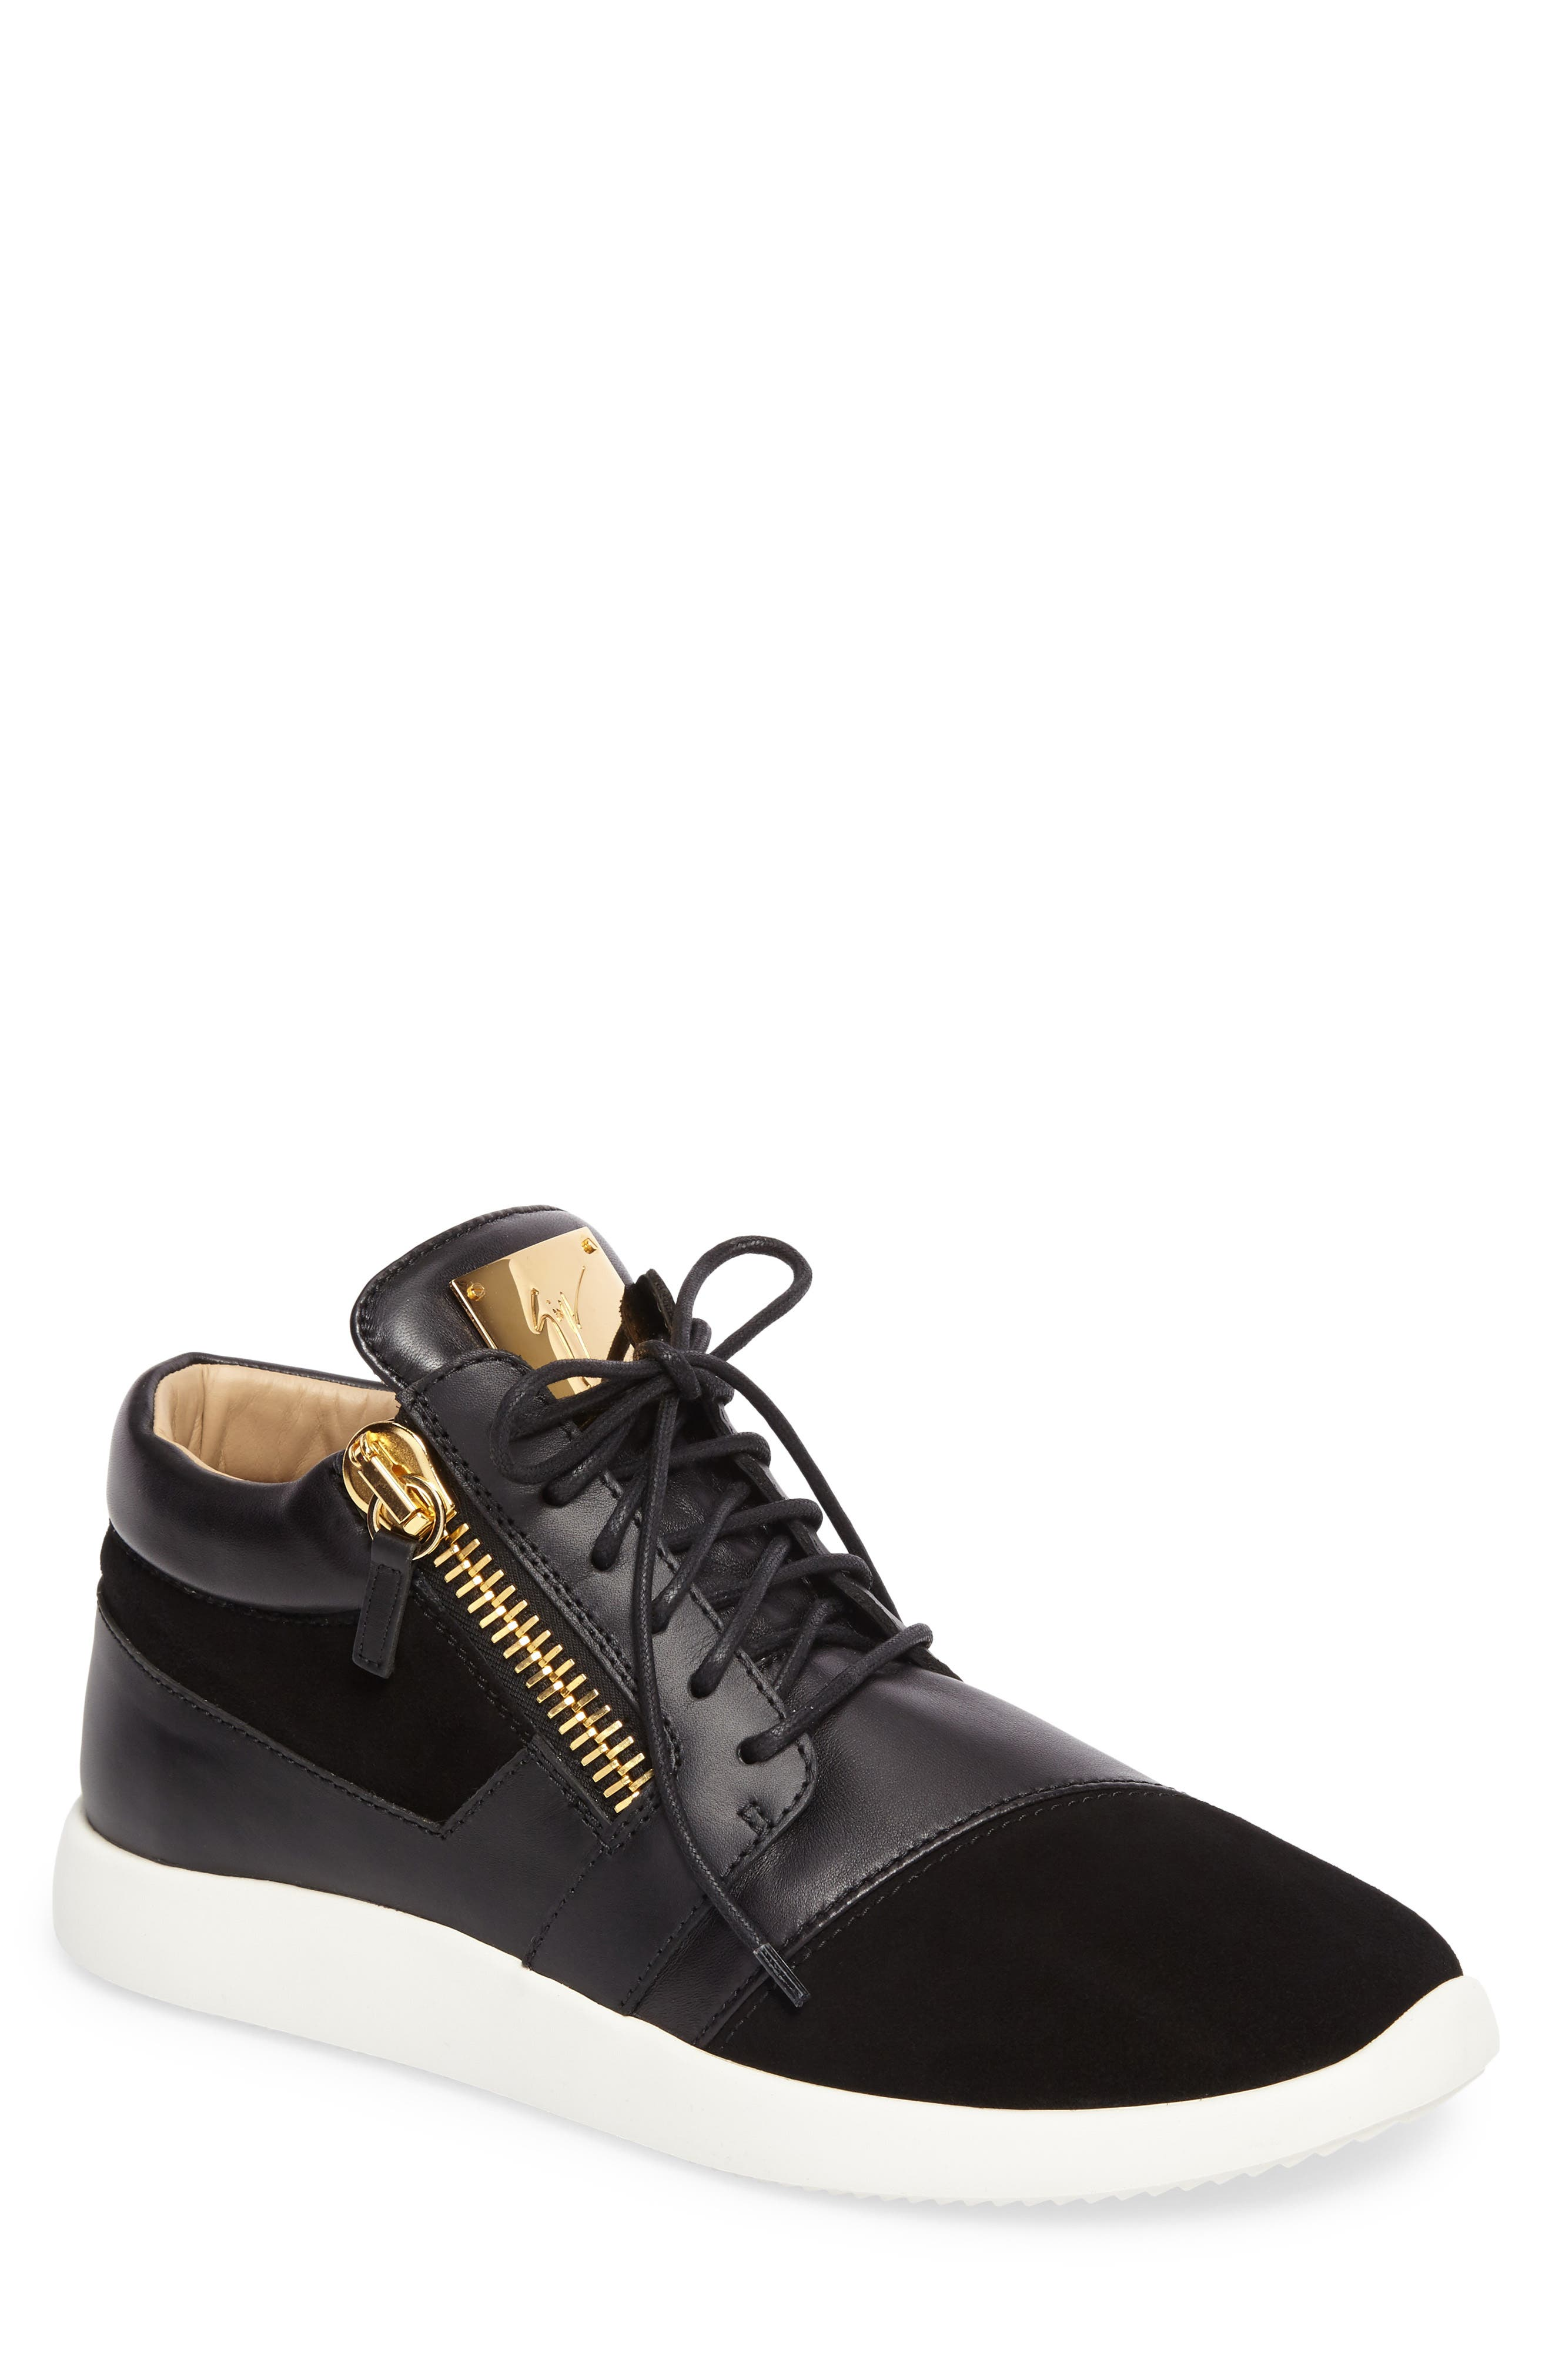 Mid-Top Sneaker,                         Main,                         color, Black